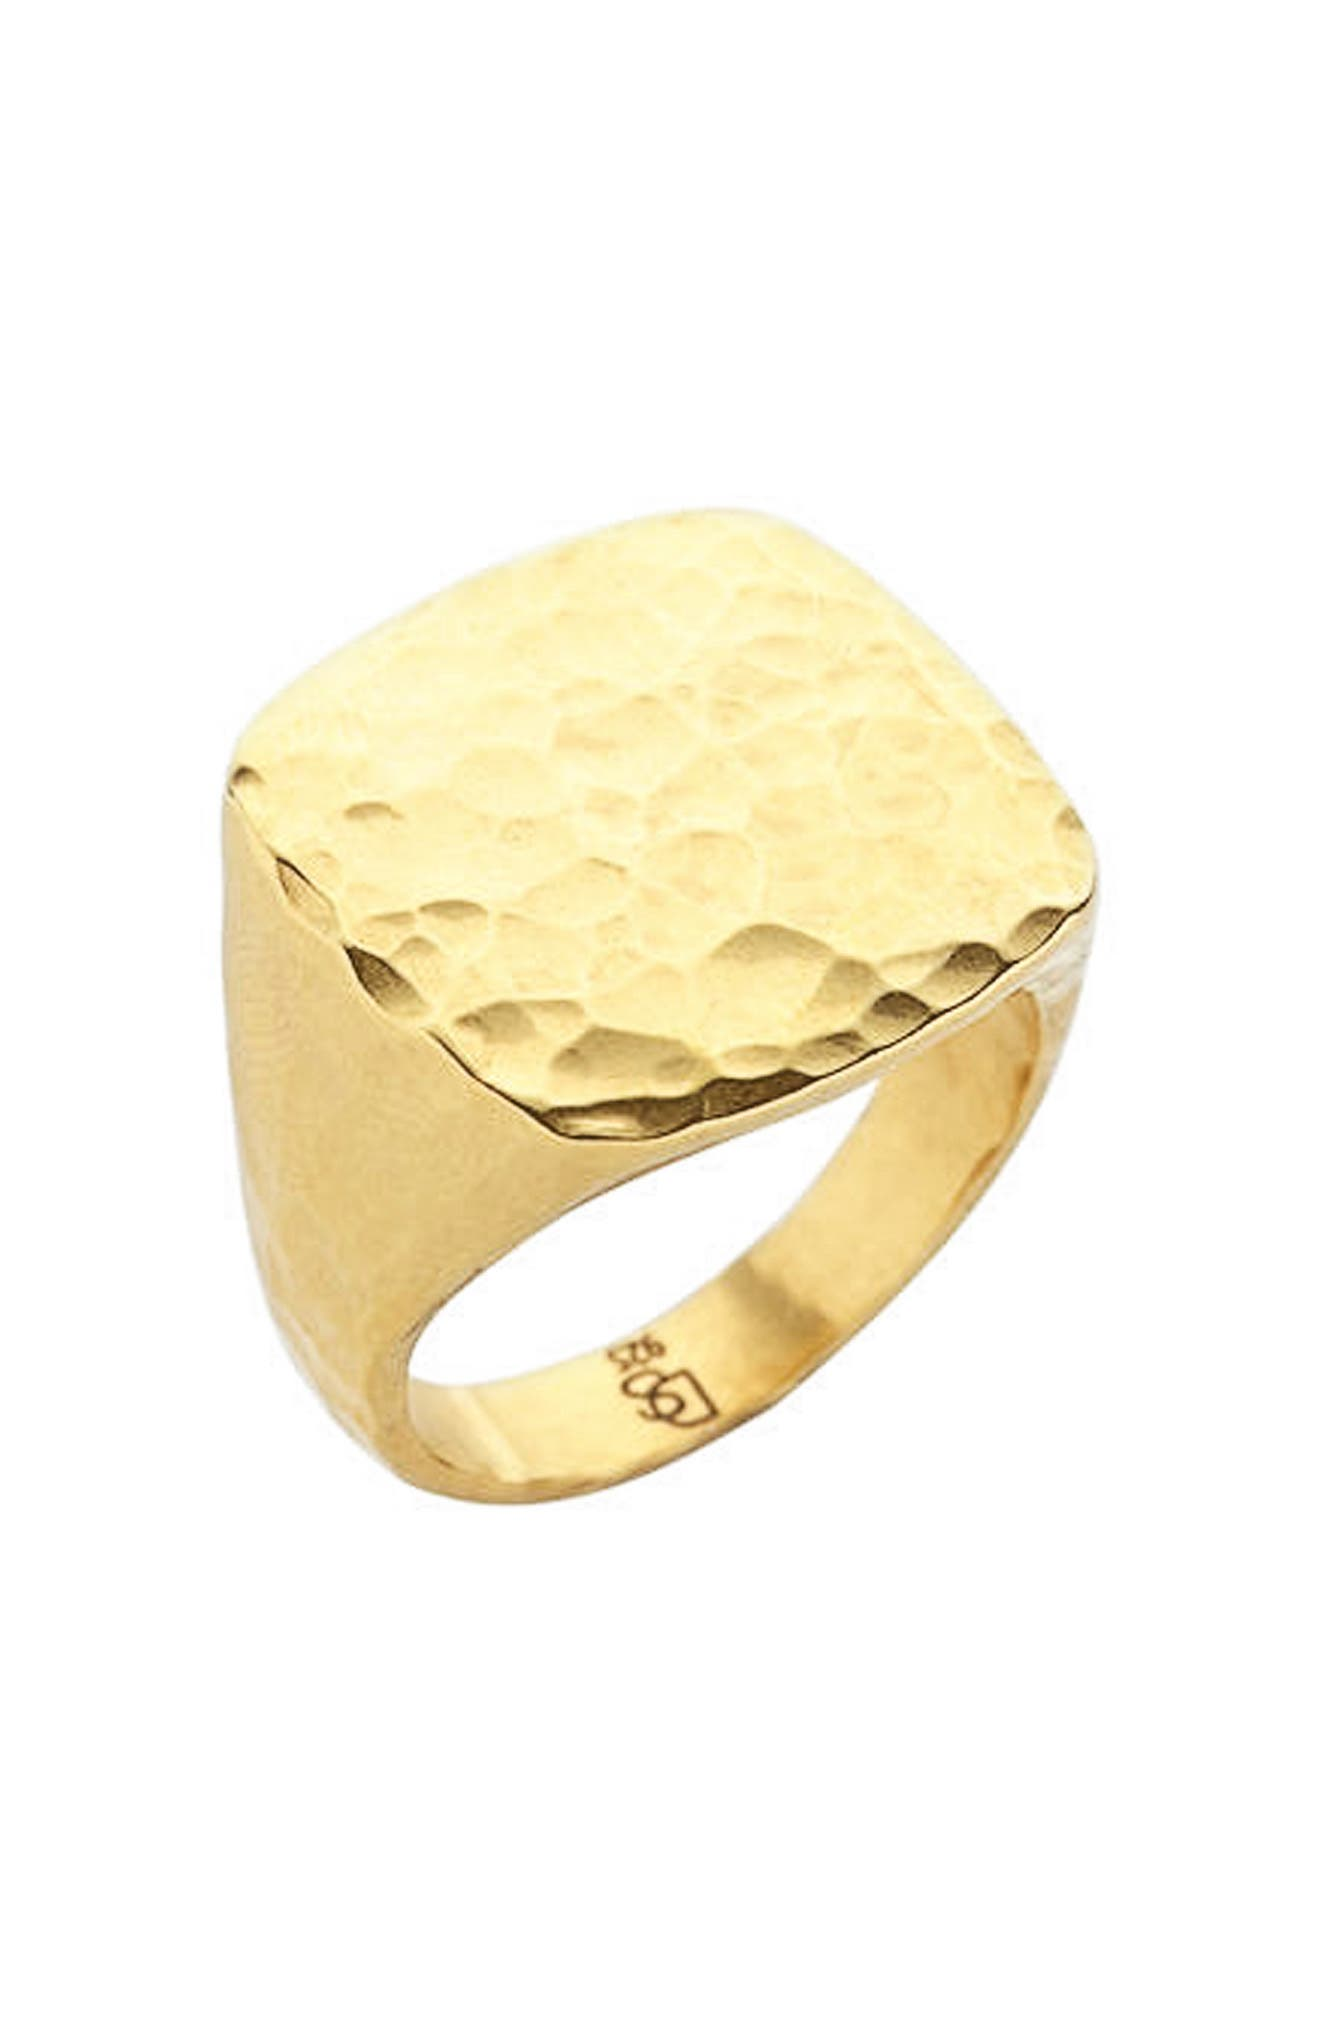 Square Hammered Ring,                         Main,                         color, Gold